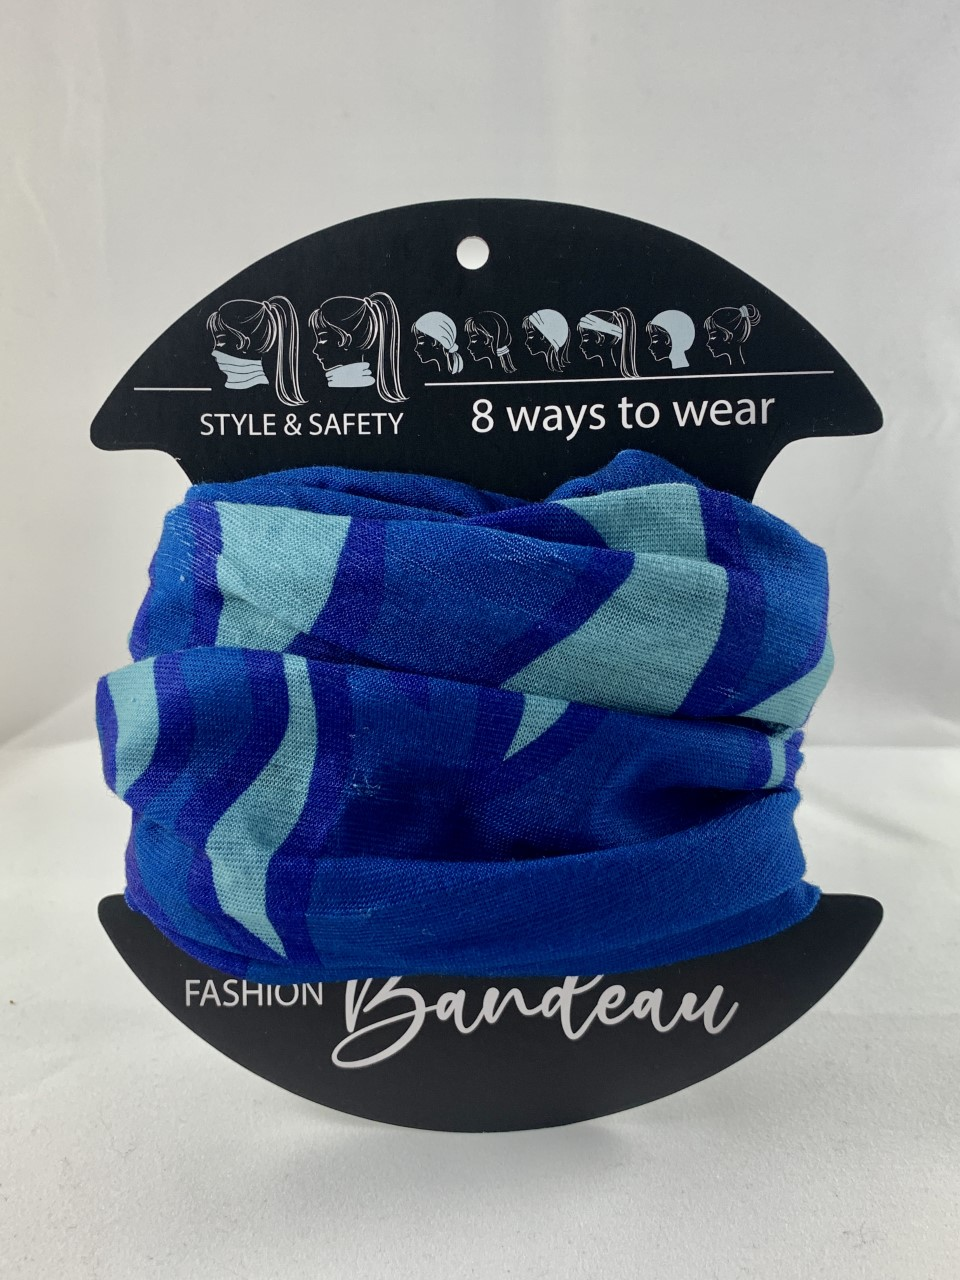 Blue and Ice Blue bandeau masks from Urban CBD Collective can help you stay safe from COVID-19